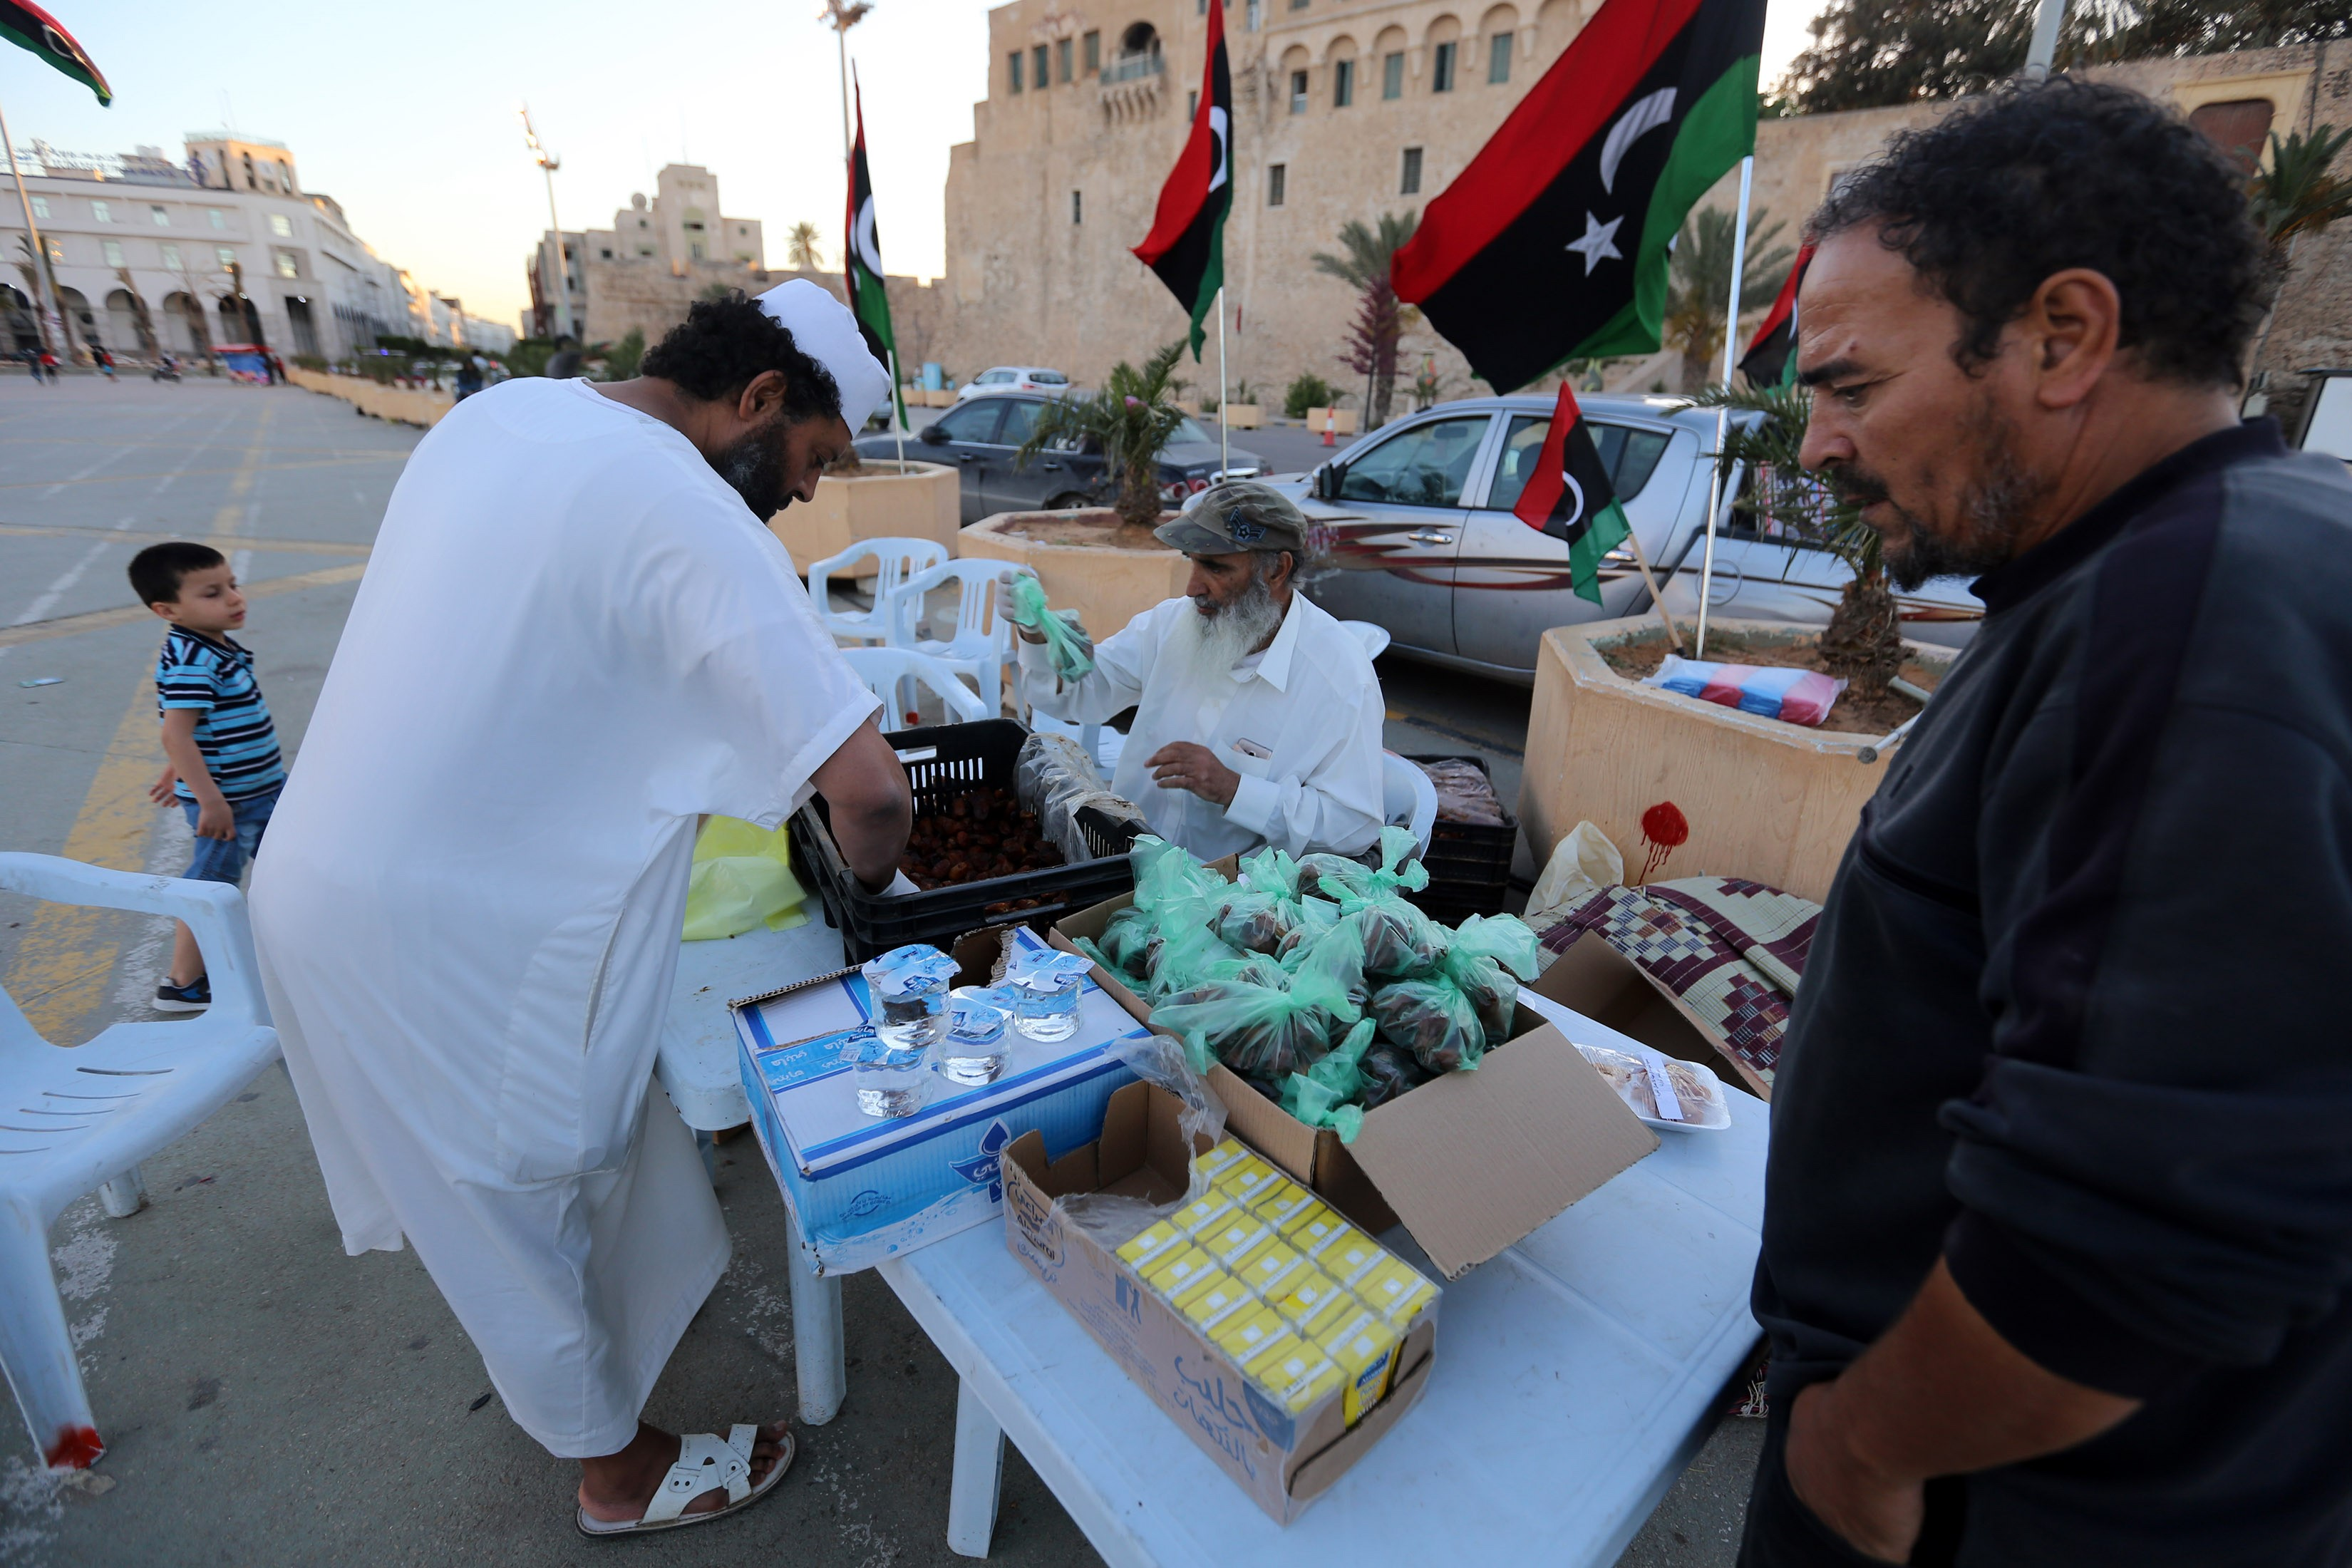 Libyans prepare to distribute snacks and water to people to break their fast during Ramadan in the Martyrs Square of the capital Tripoli, on 15 May (AFP)